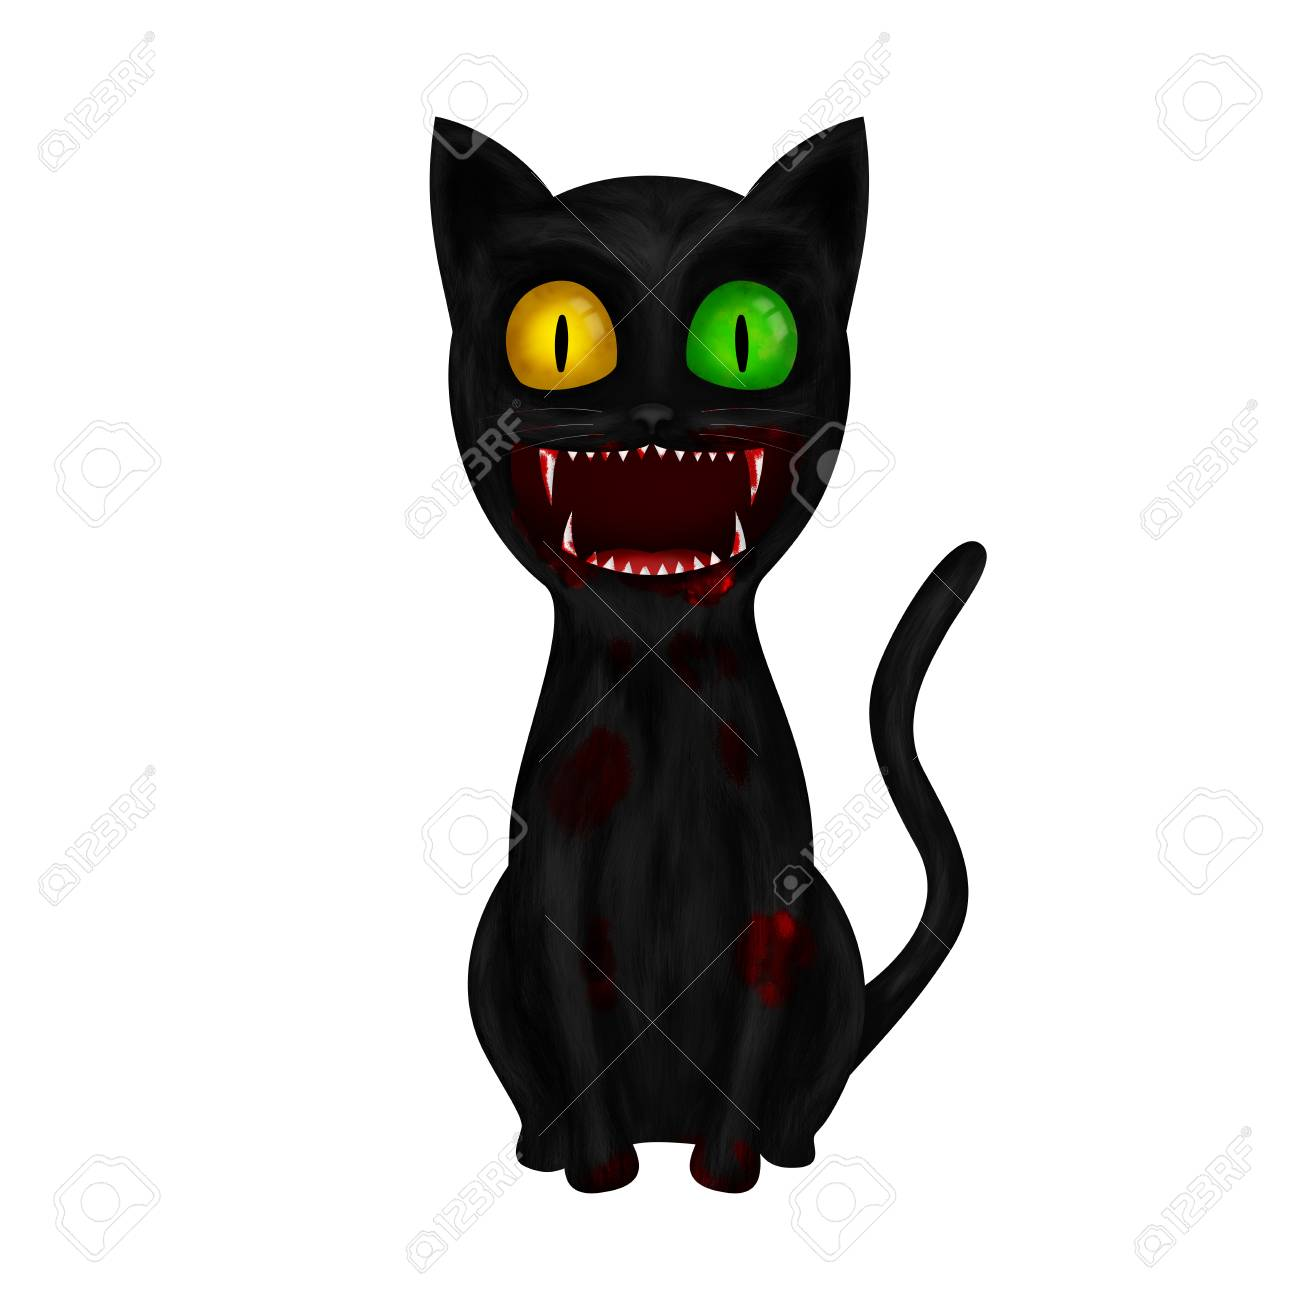 Scary Sitting Cartoon Black Cat In Blood Illustration Isolated